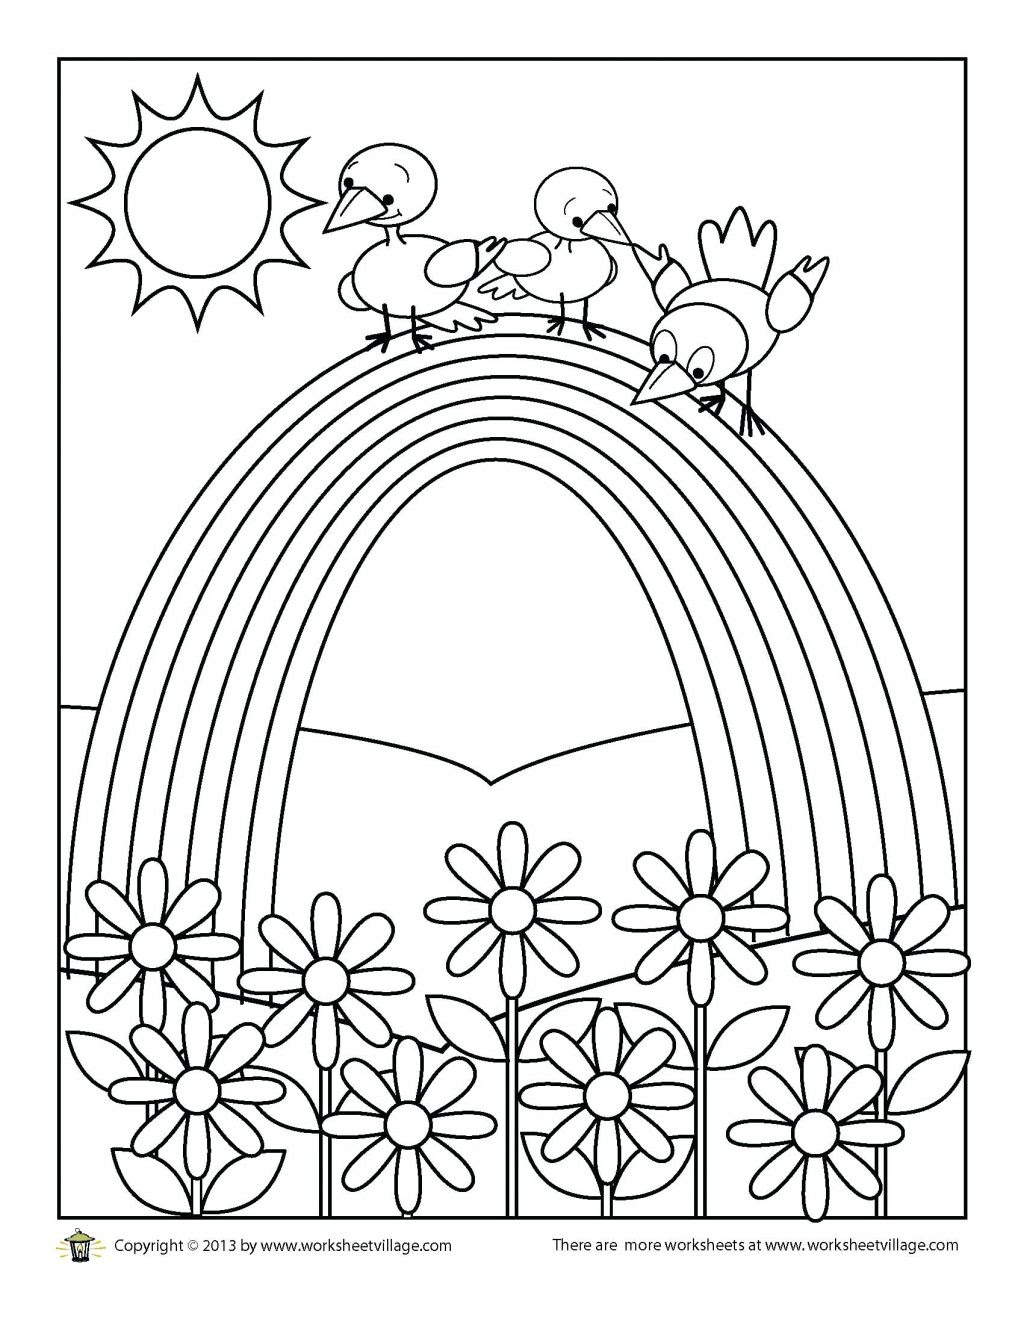 Rainbow Coloring Pages For Adults at GetColorings.com ...